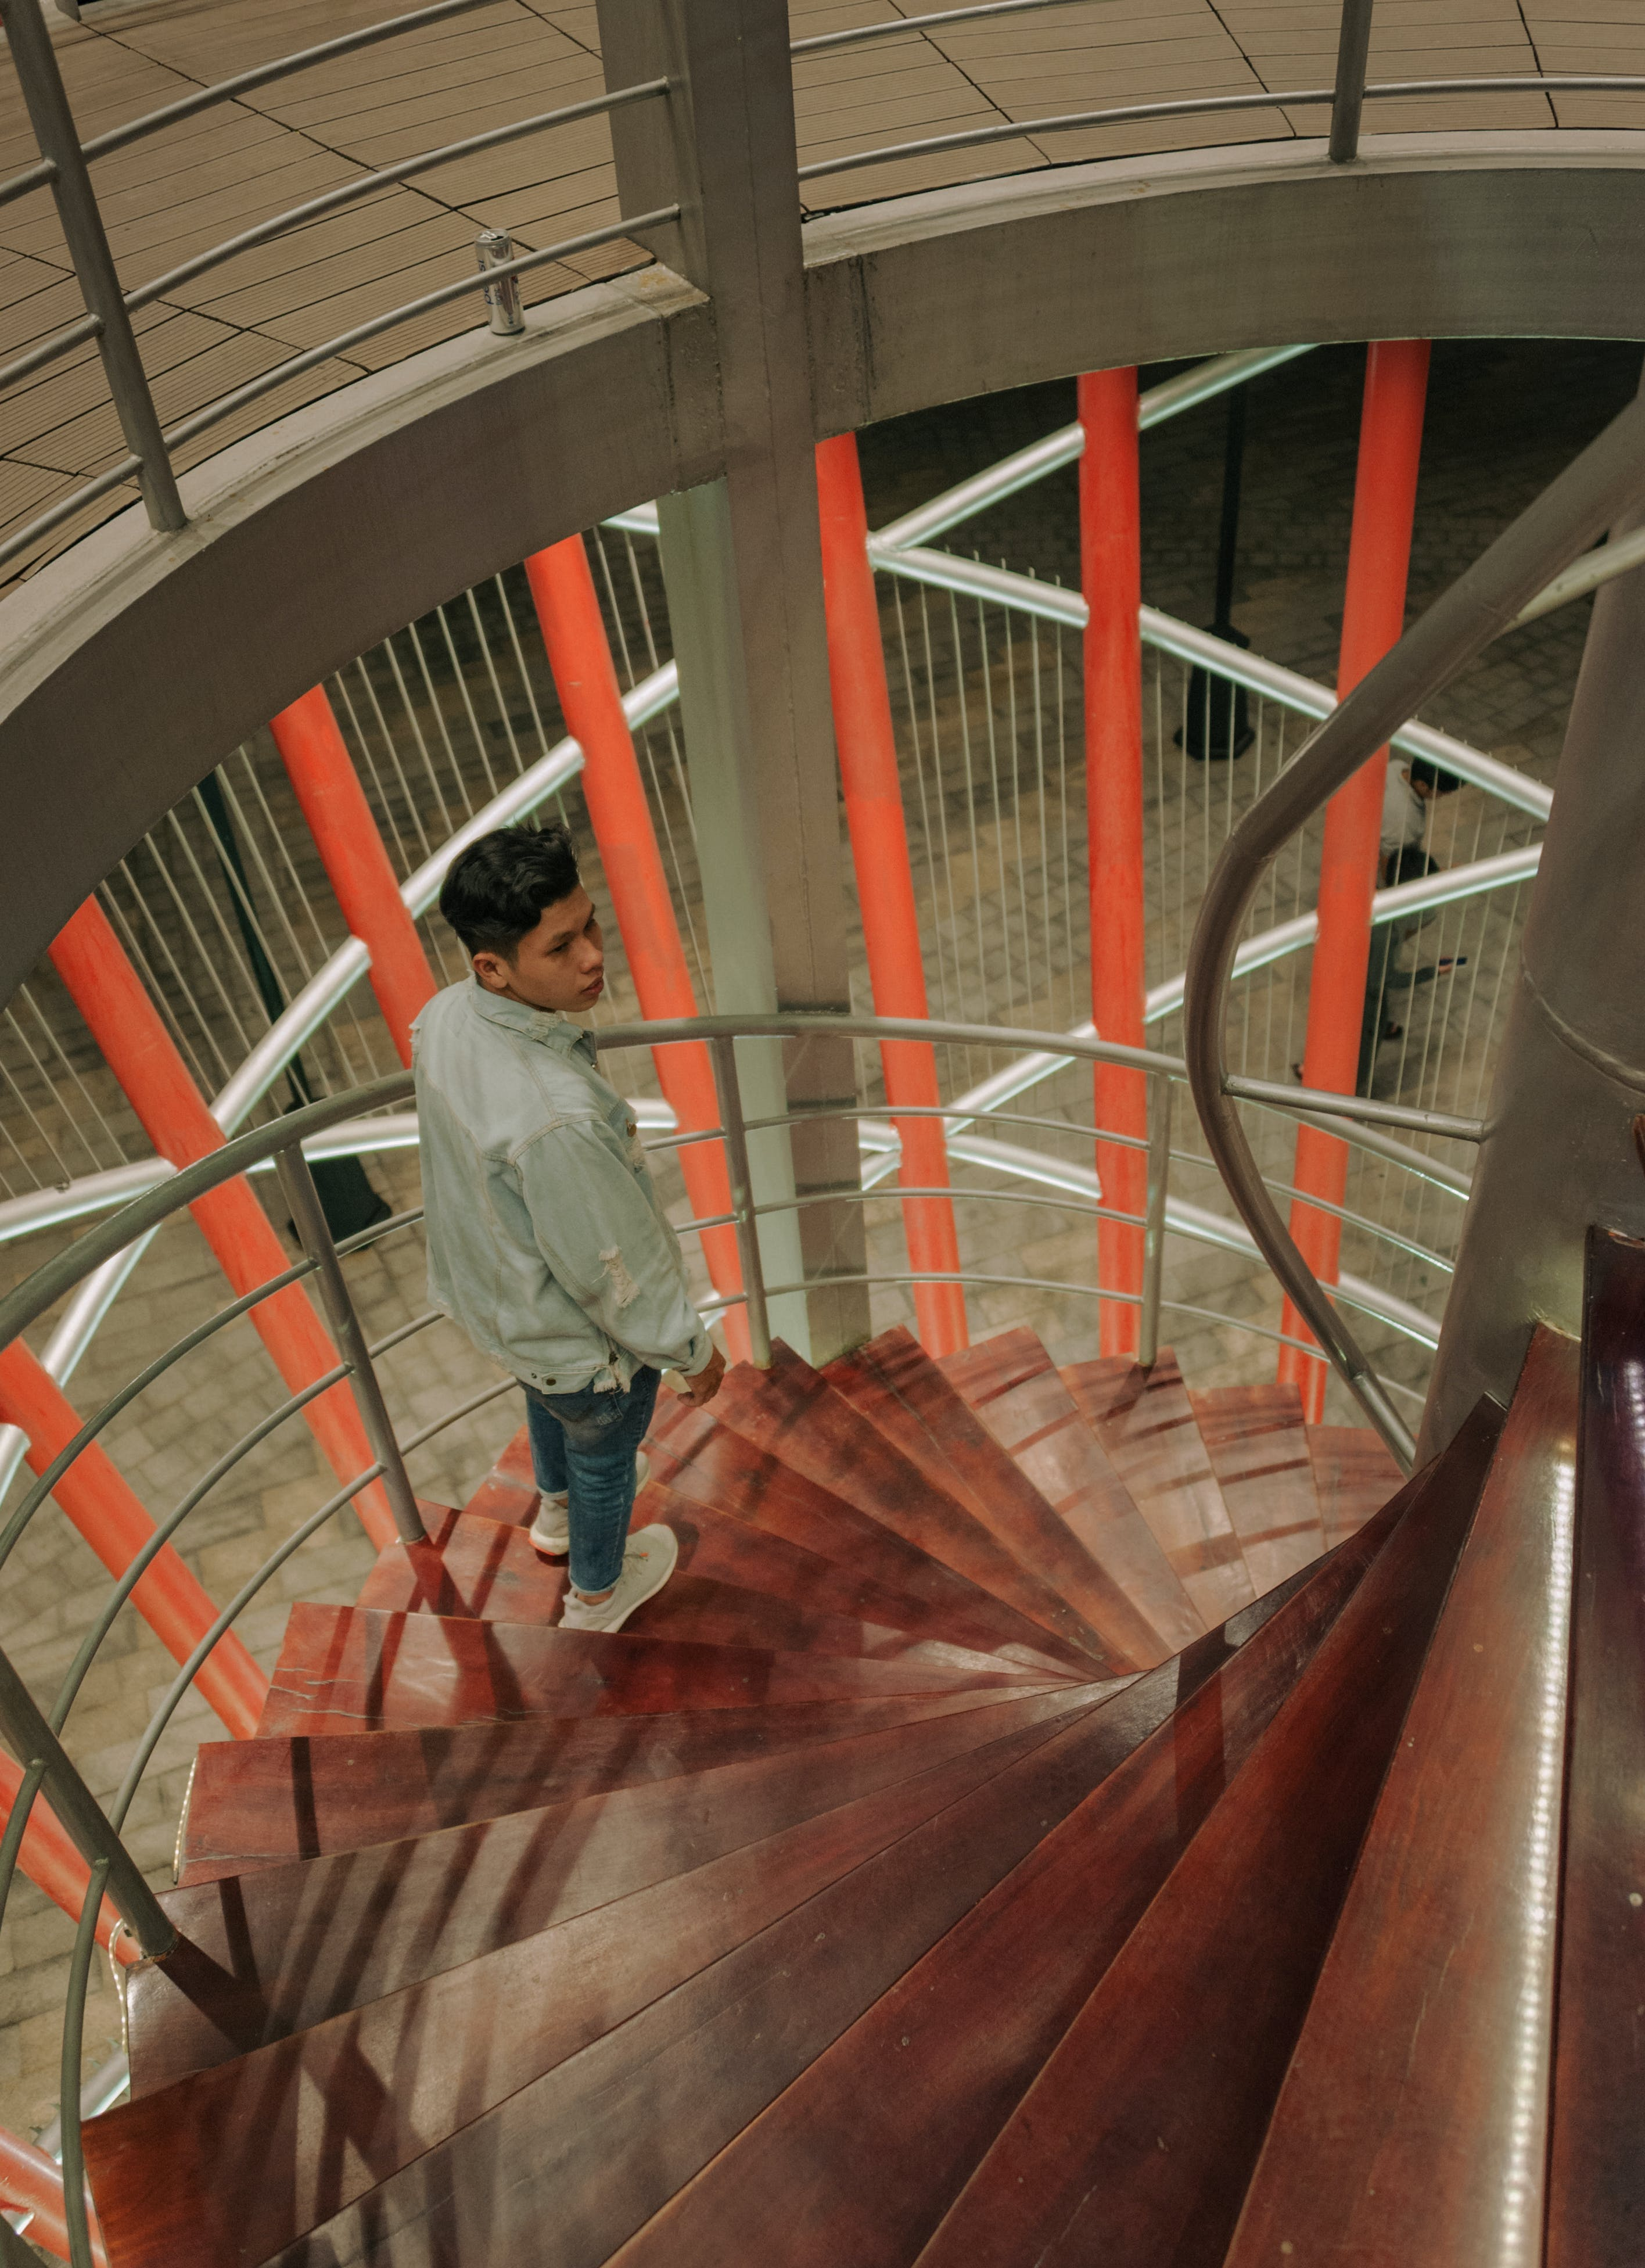 Man Wearing Gray Long-sleeved Top at the Staircase